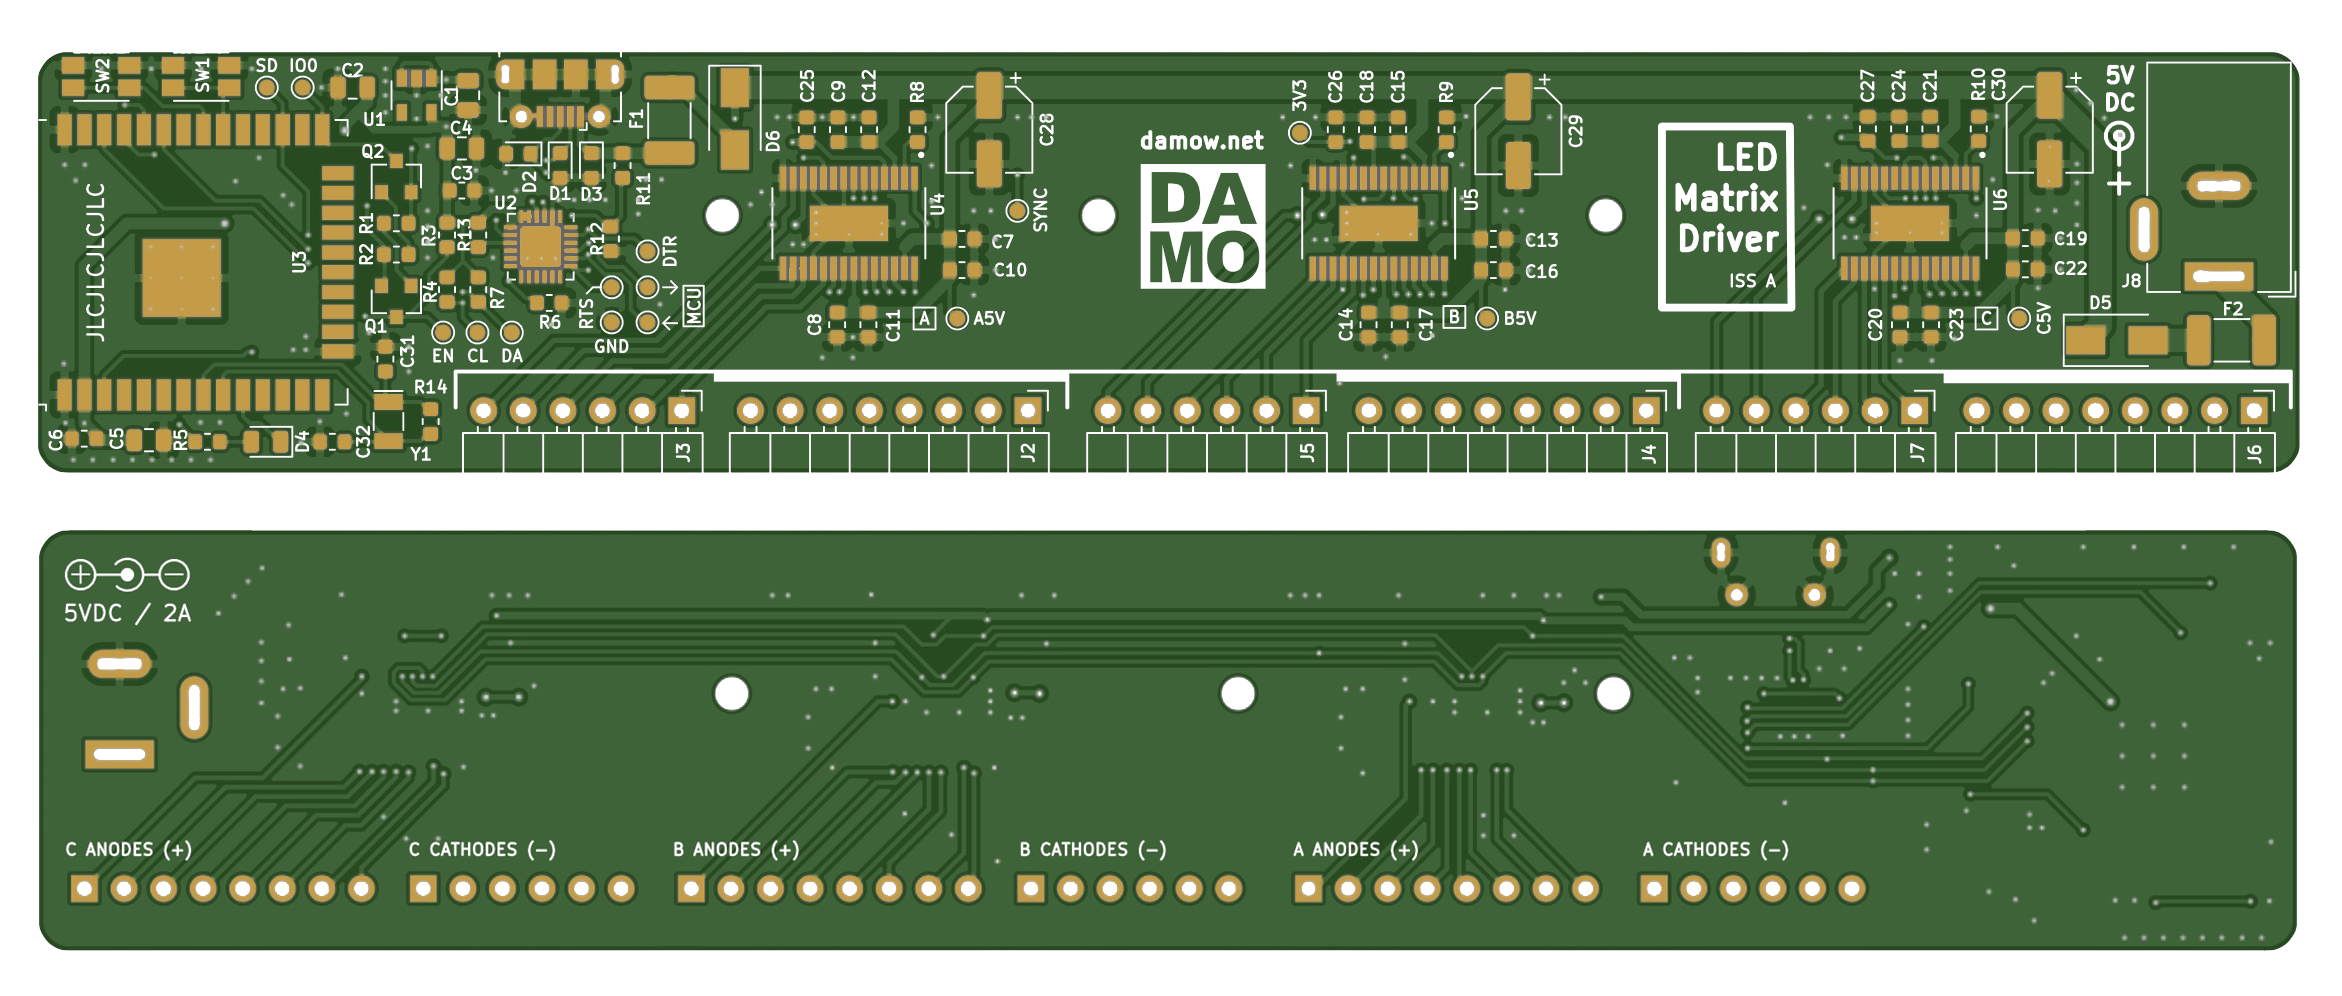 Finished Gerbers of the PCB layout